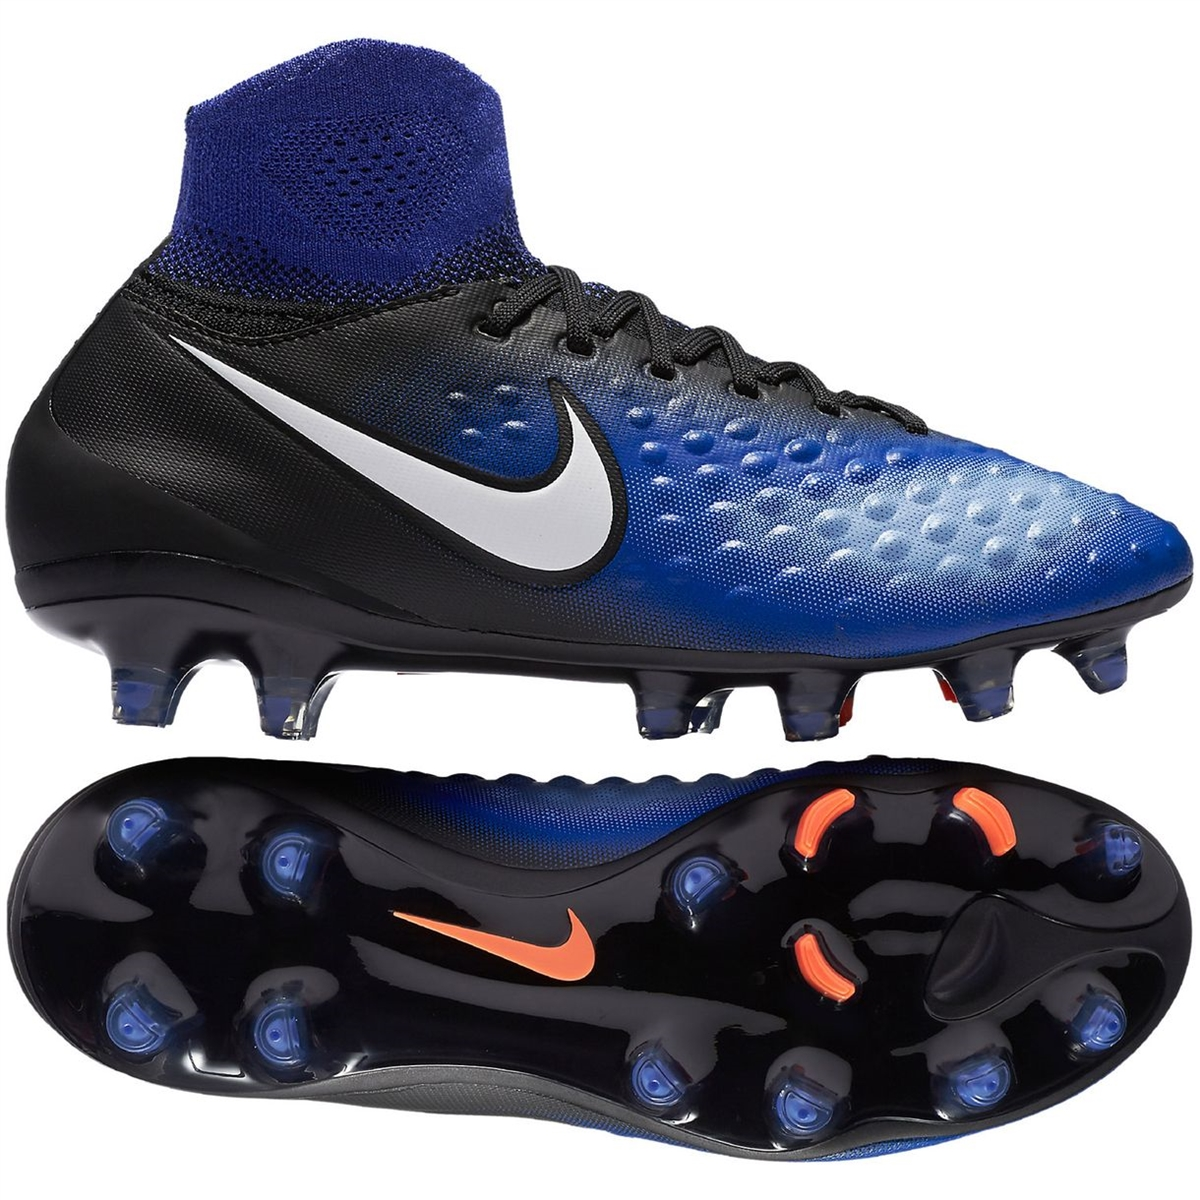 160c3dd31a27 Nike Magista Obra II FG Youth Soccer Cleats (Black White Paramount ...